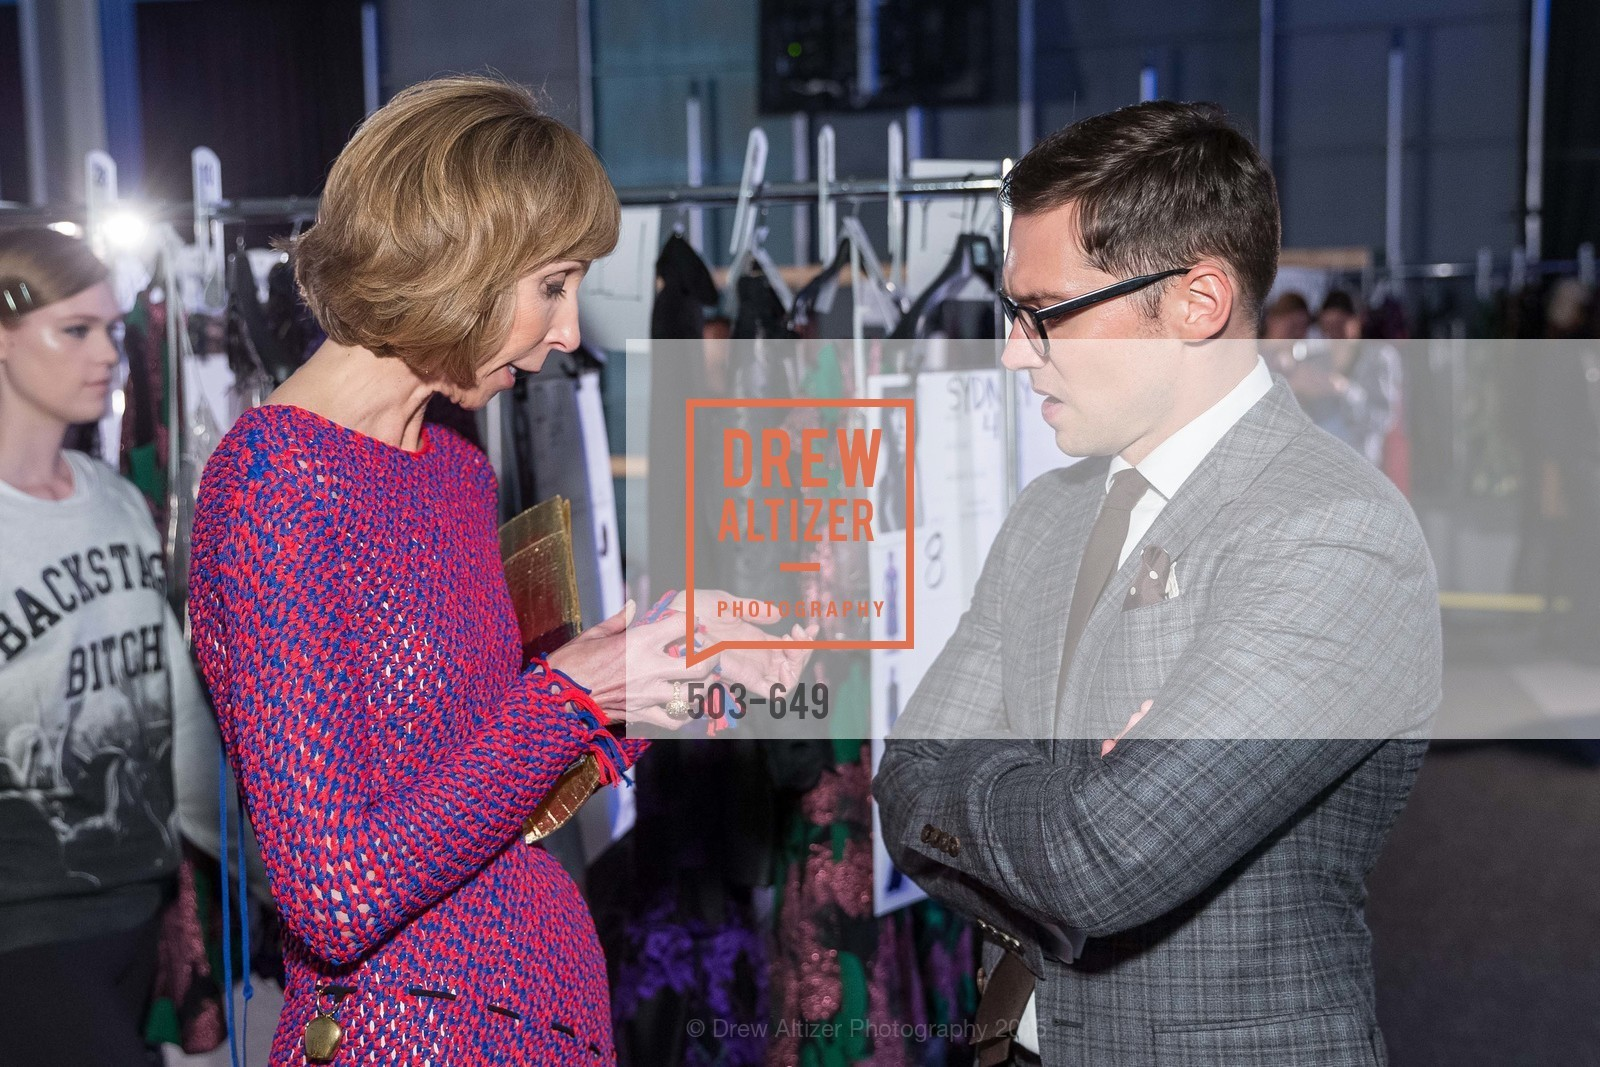 Nancy Kukacka, Erdem Moralioglu, Fashion Forward: An Evening with Erdem presented by SF Opera Guild and Saks Fifth Avenue, Pier 27. Pier 27, The Embarcadero, March 25th, 2015,Drew Altizer, Drew Altizer Photography, full-service agency, private events, San Francisco photographer, photographer california